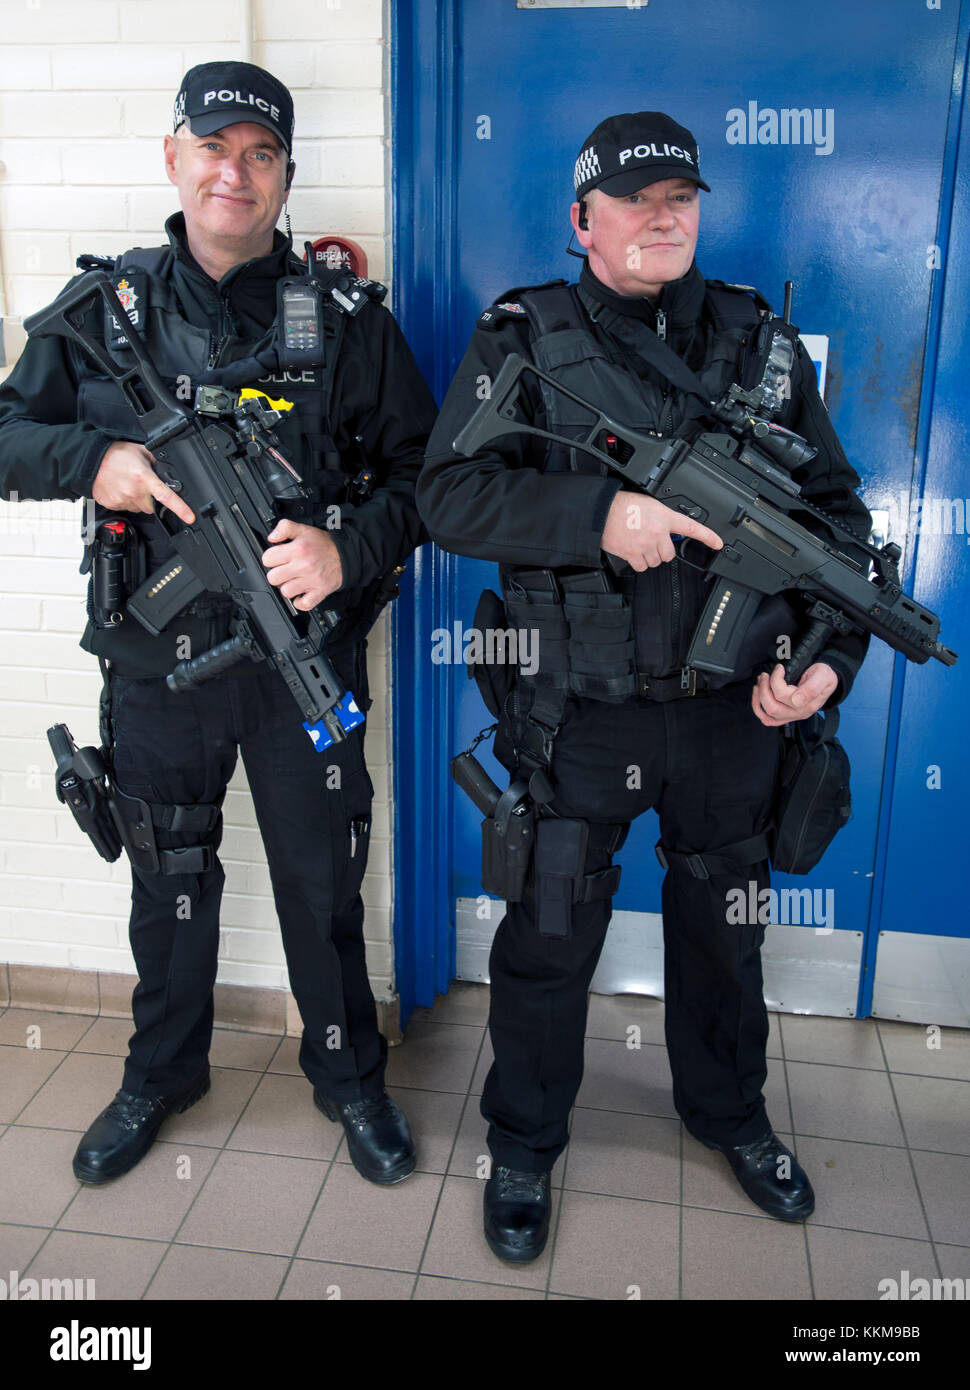 Armed police officers in Hunterston B Nuclear Power station, West Kilbride, North Ayrshire, Scotland - Stock Image